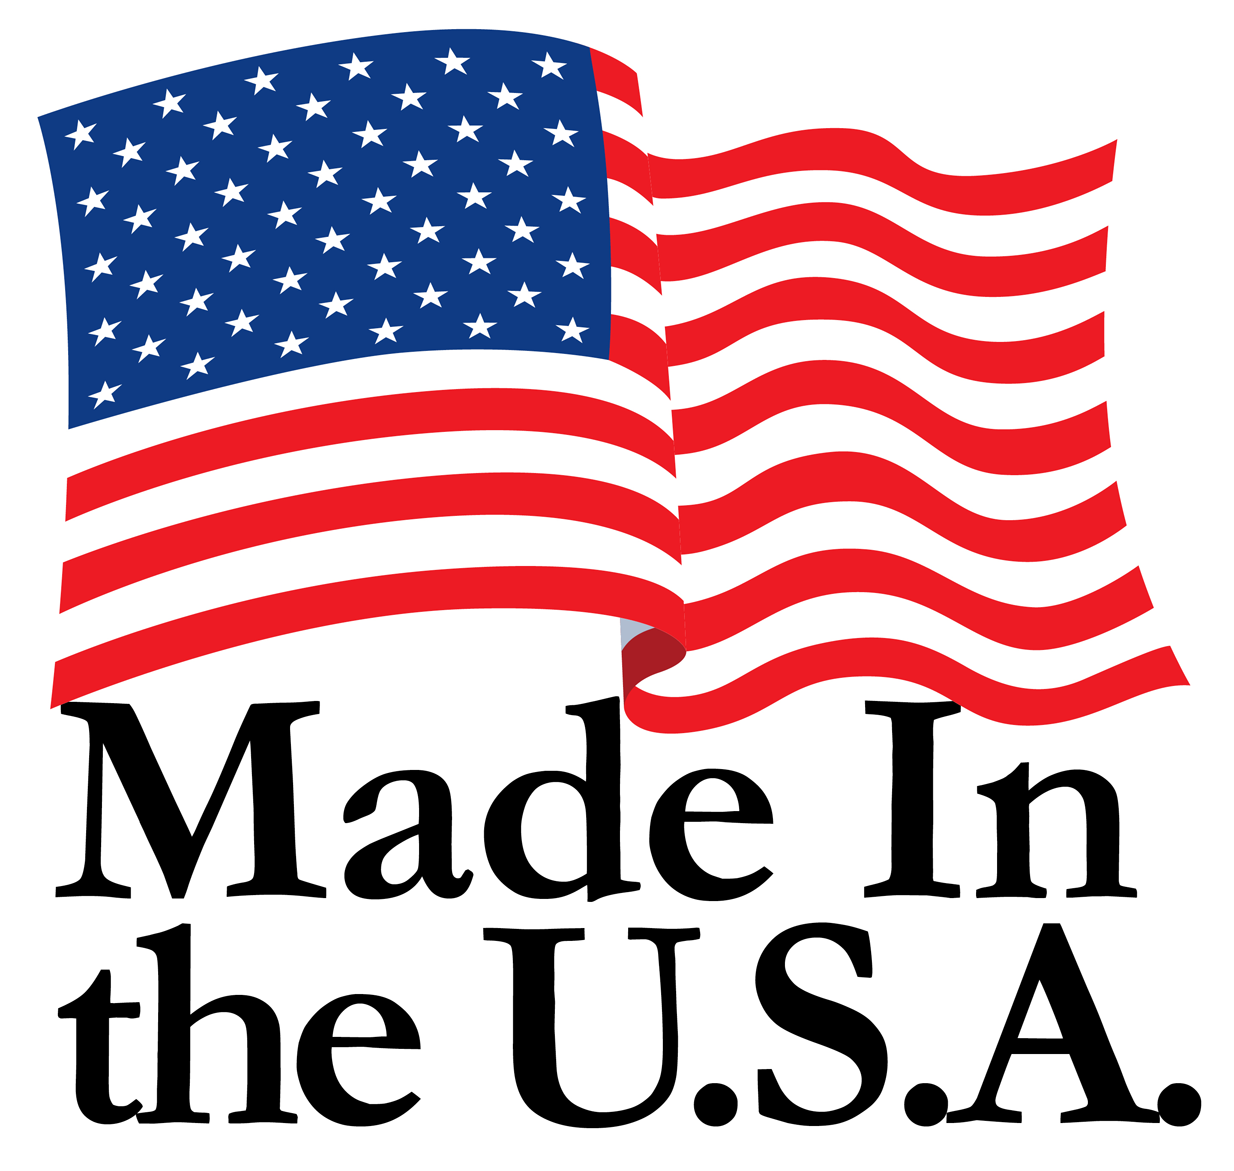 Shade Tree Fabrics shade cloth is Made in America